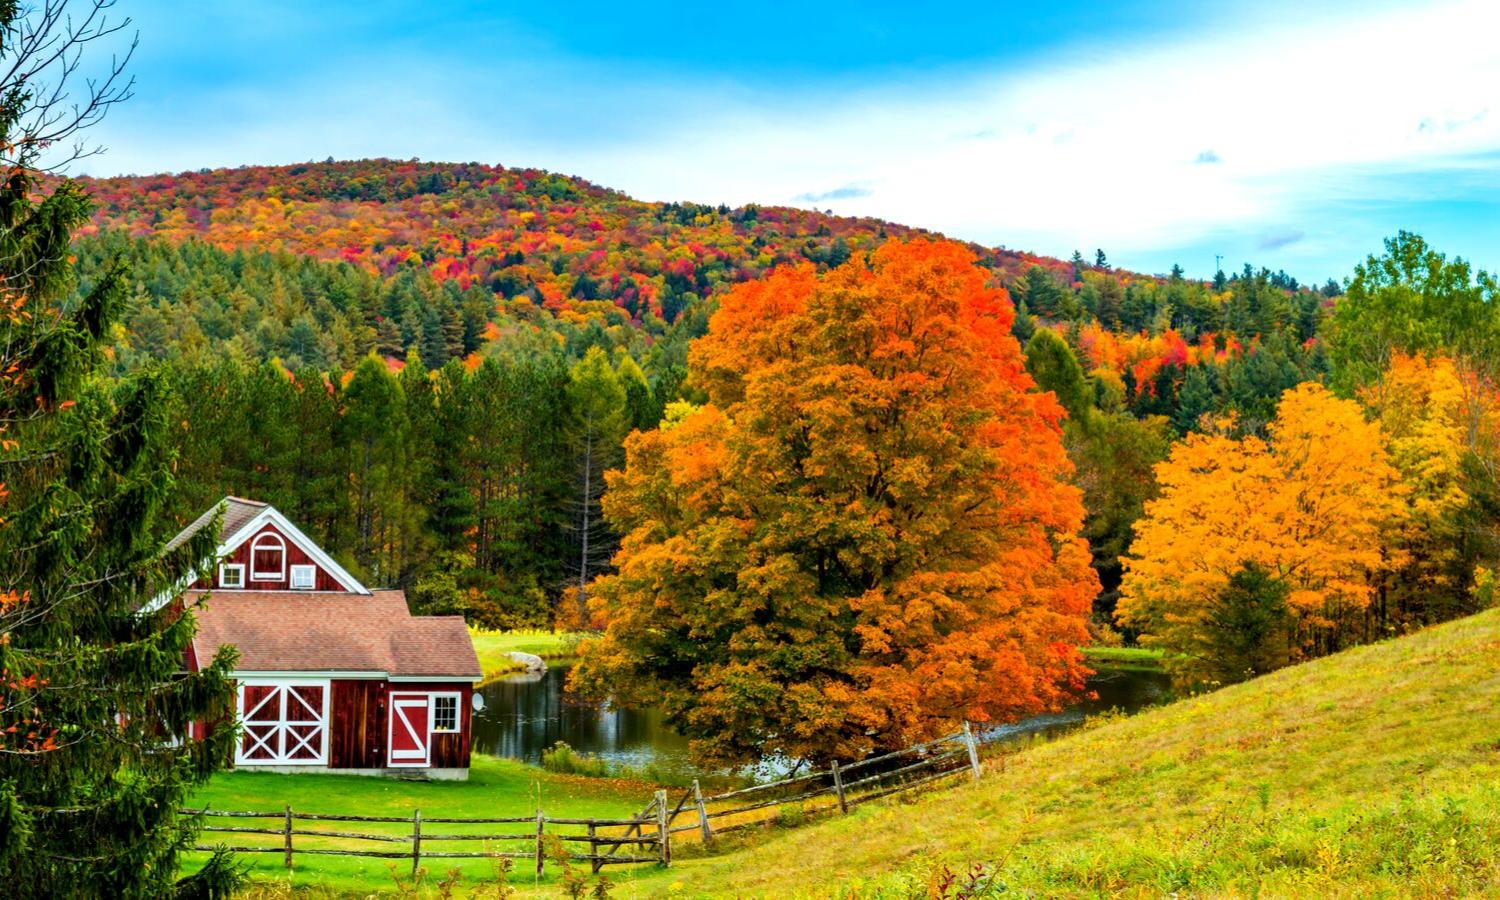 Photograph of an American autumn landscape. Red barn nestled in red, orange and green-leafed trees.